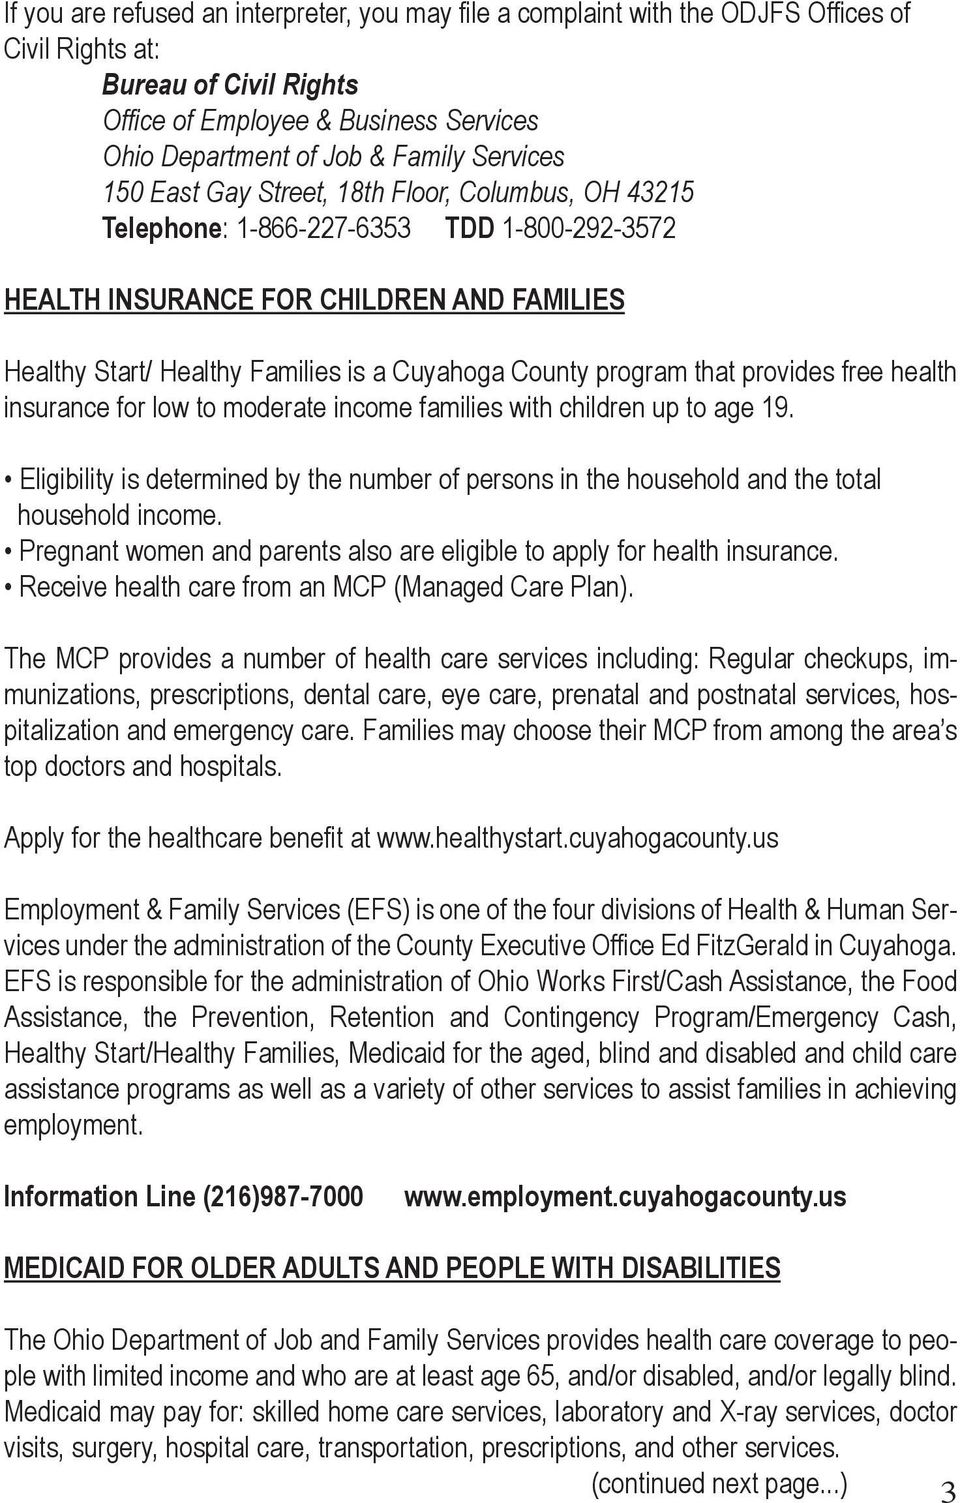 County program that provides free health insurance for low to moderate income families with children up to age 19.